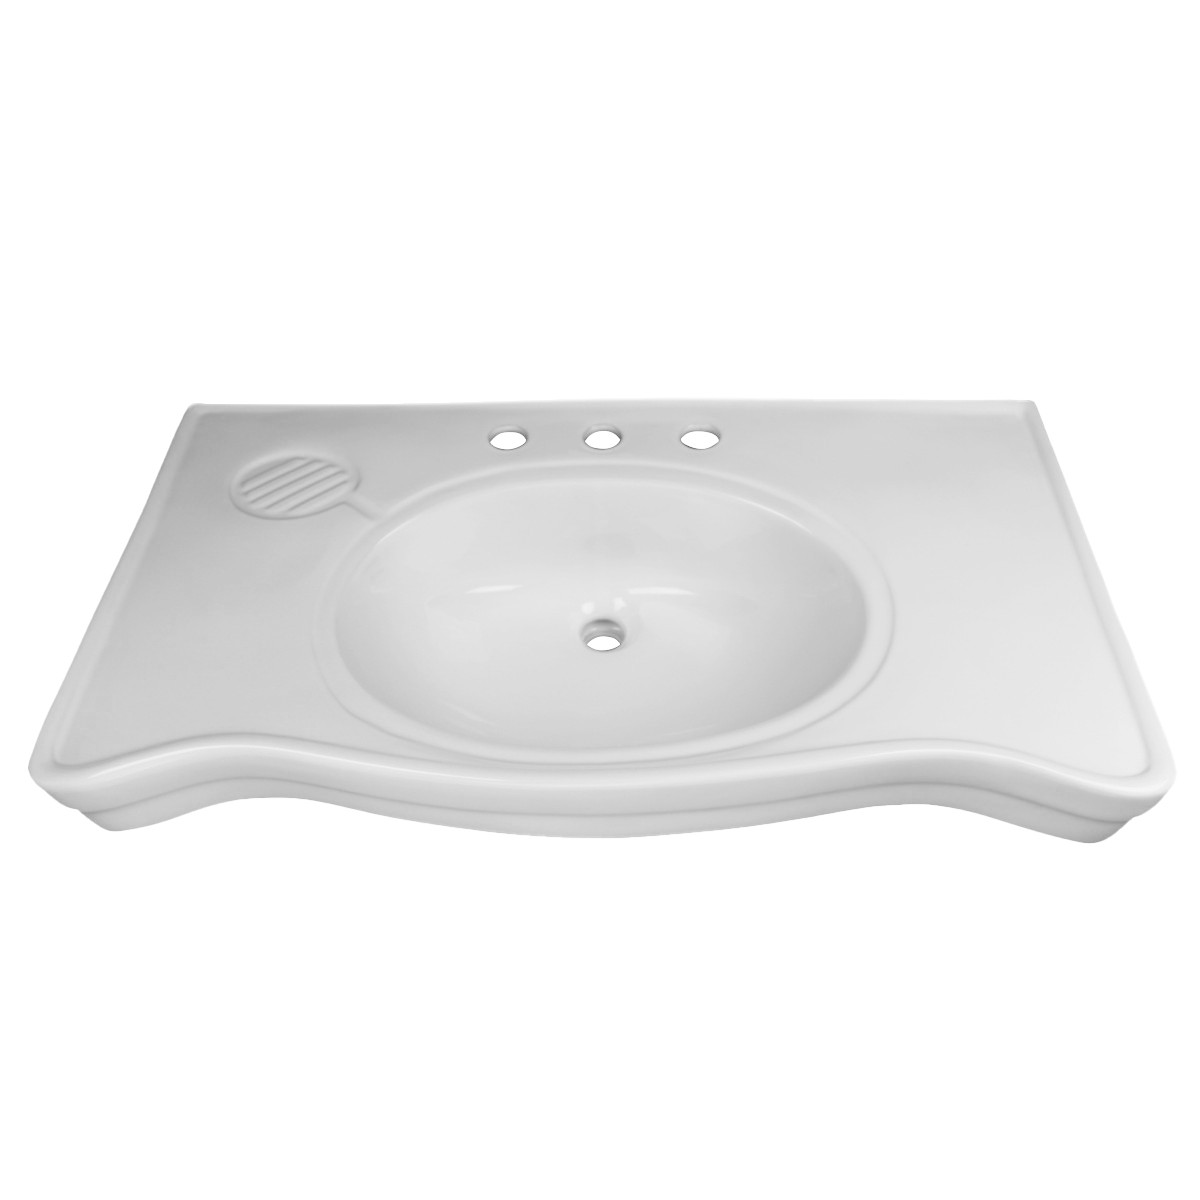 White Console Sink Belle Epoque Deluxe with Chrome Bistro Legs Porcelain Console Sink Glossy Console Bathroom Sinks Wall Mount Console Sink